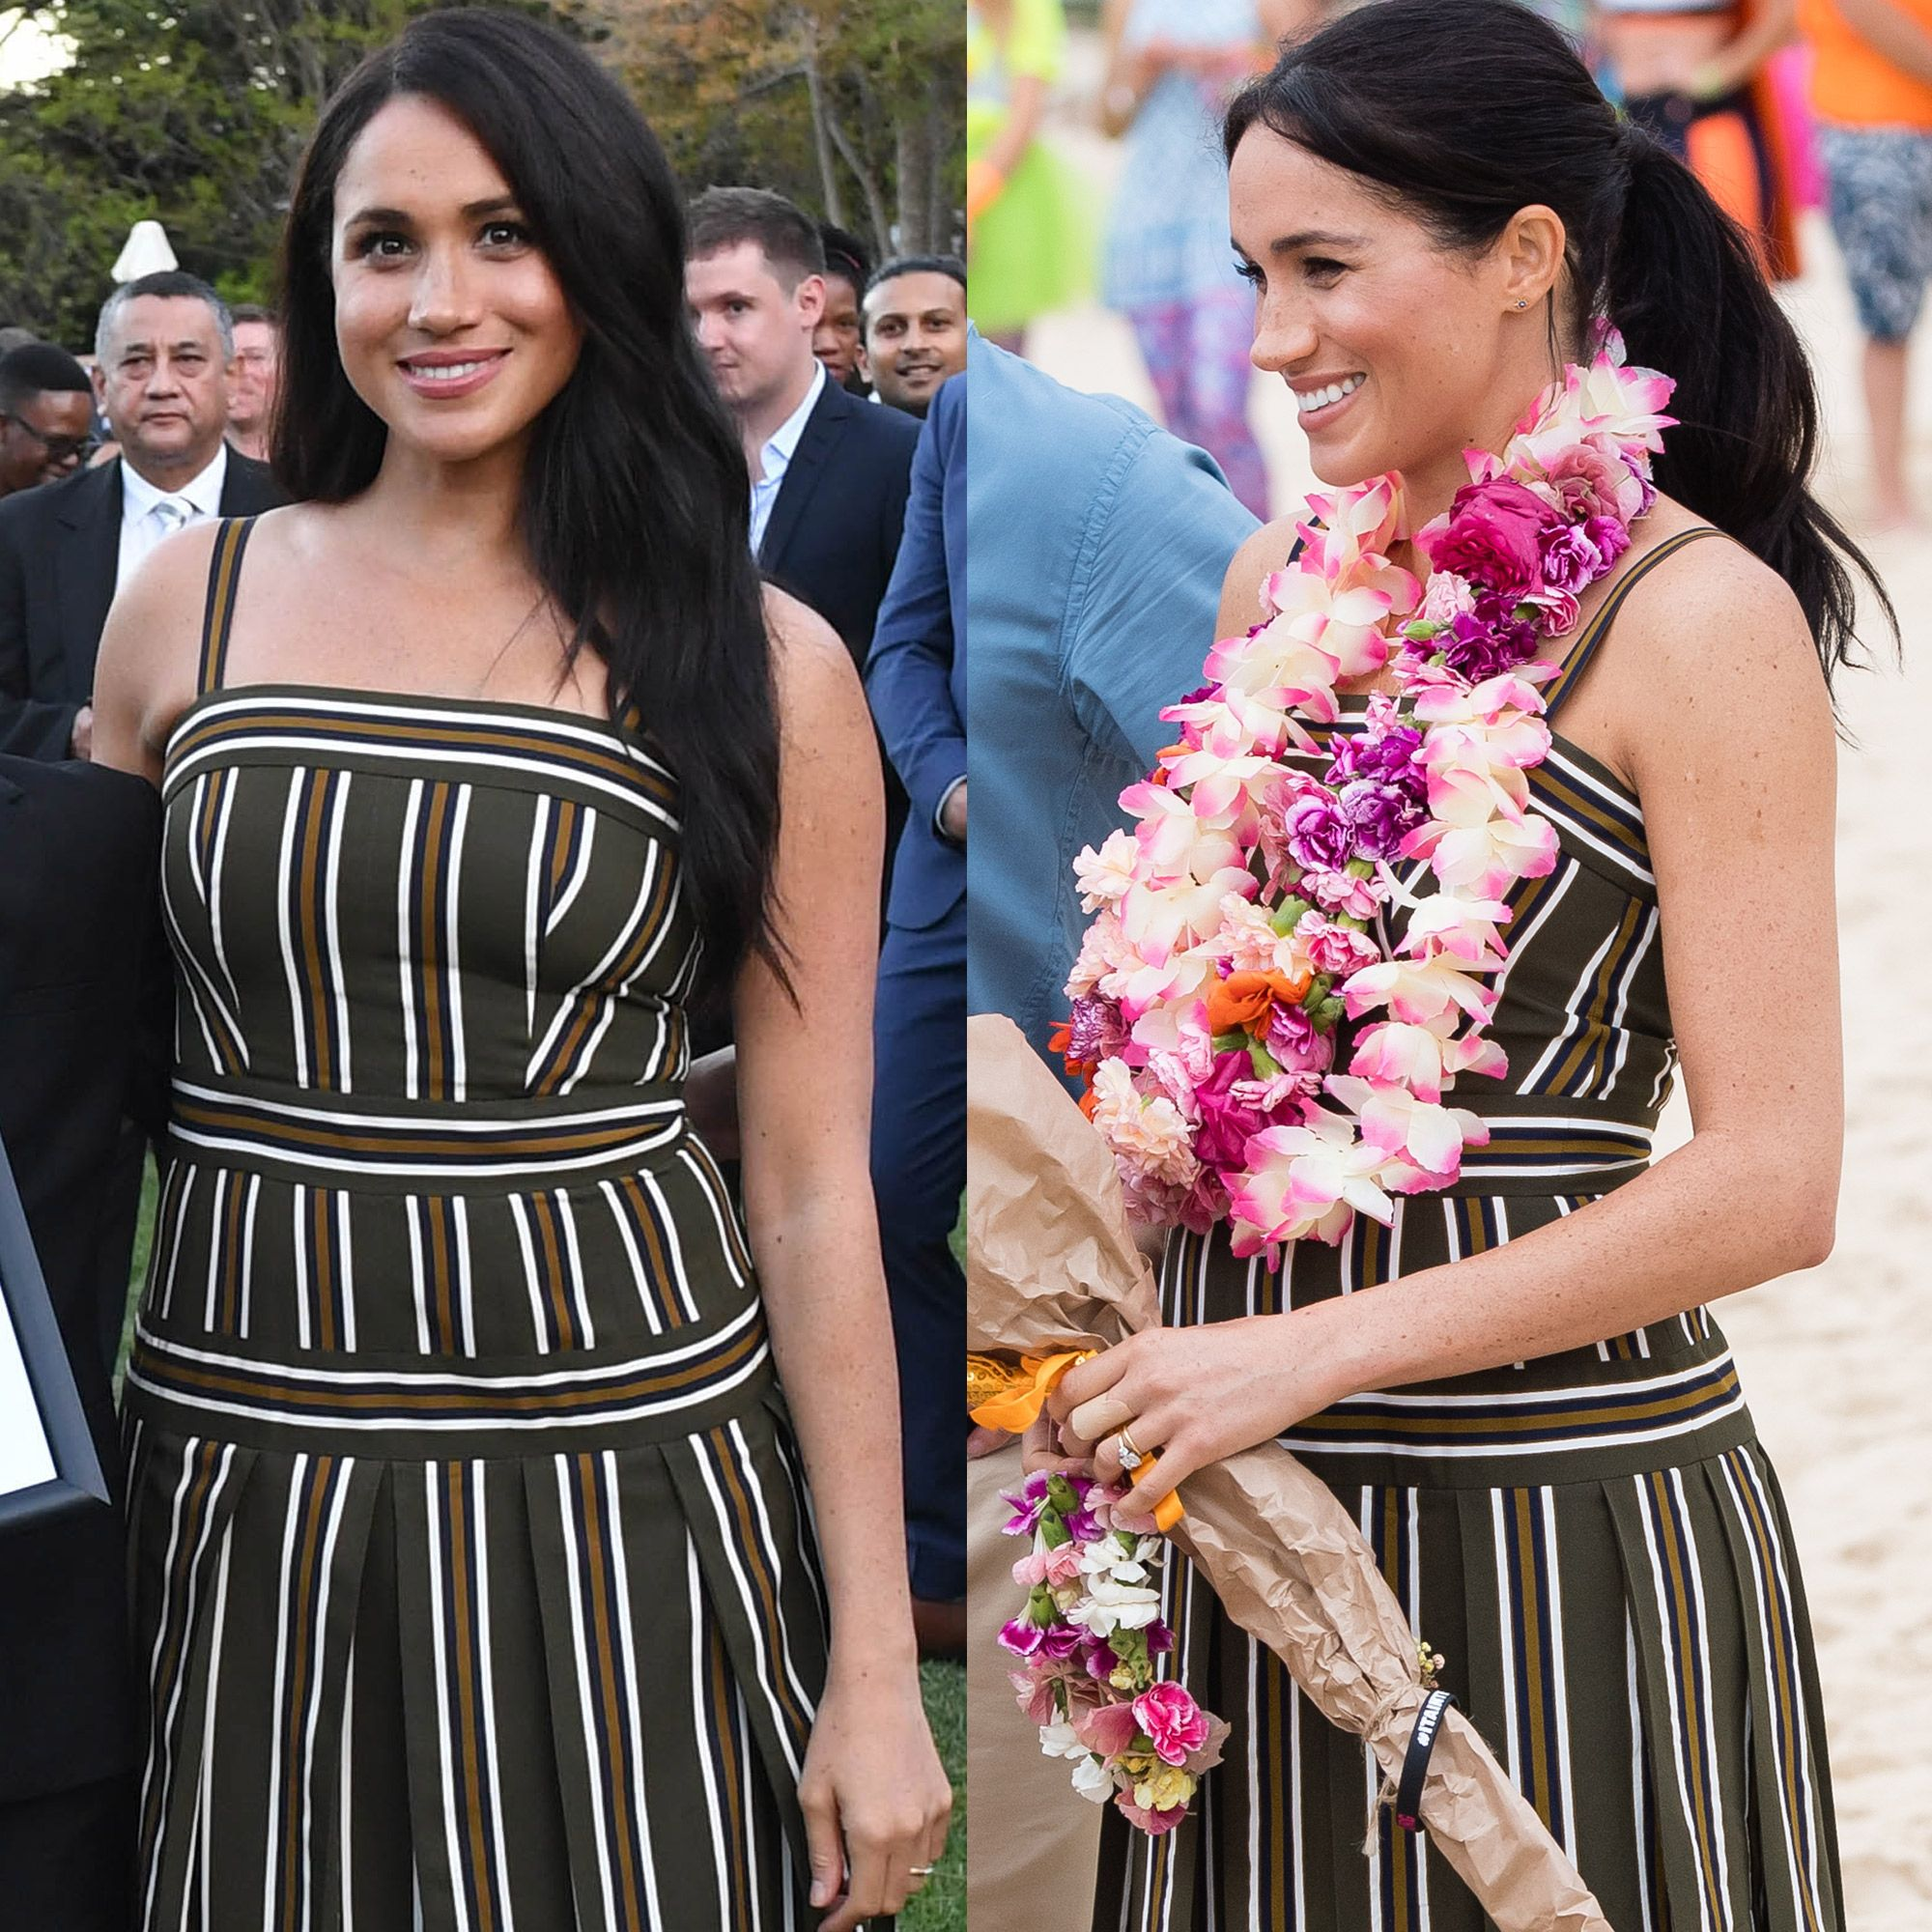 Meghan Markle Re-wears Her Striped Martin Grant Maxi Dress on the Royal Tour